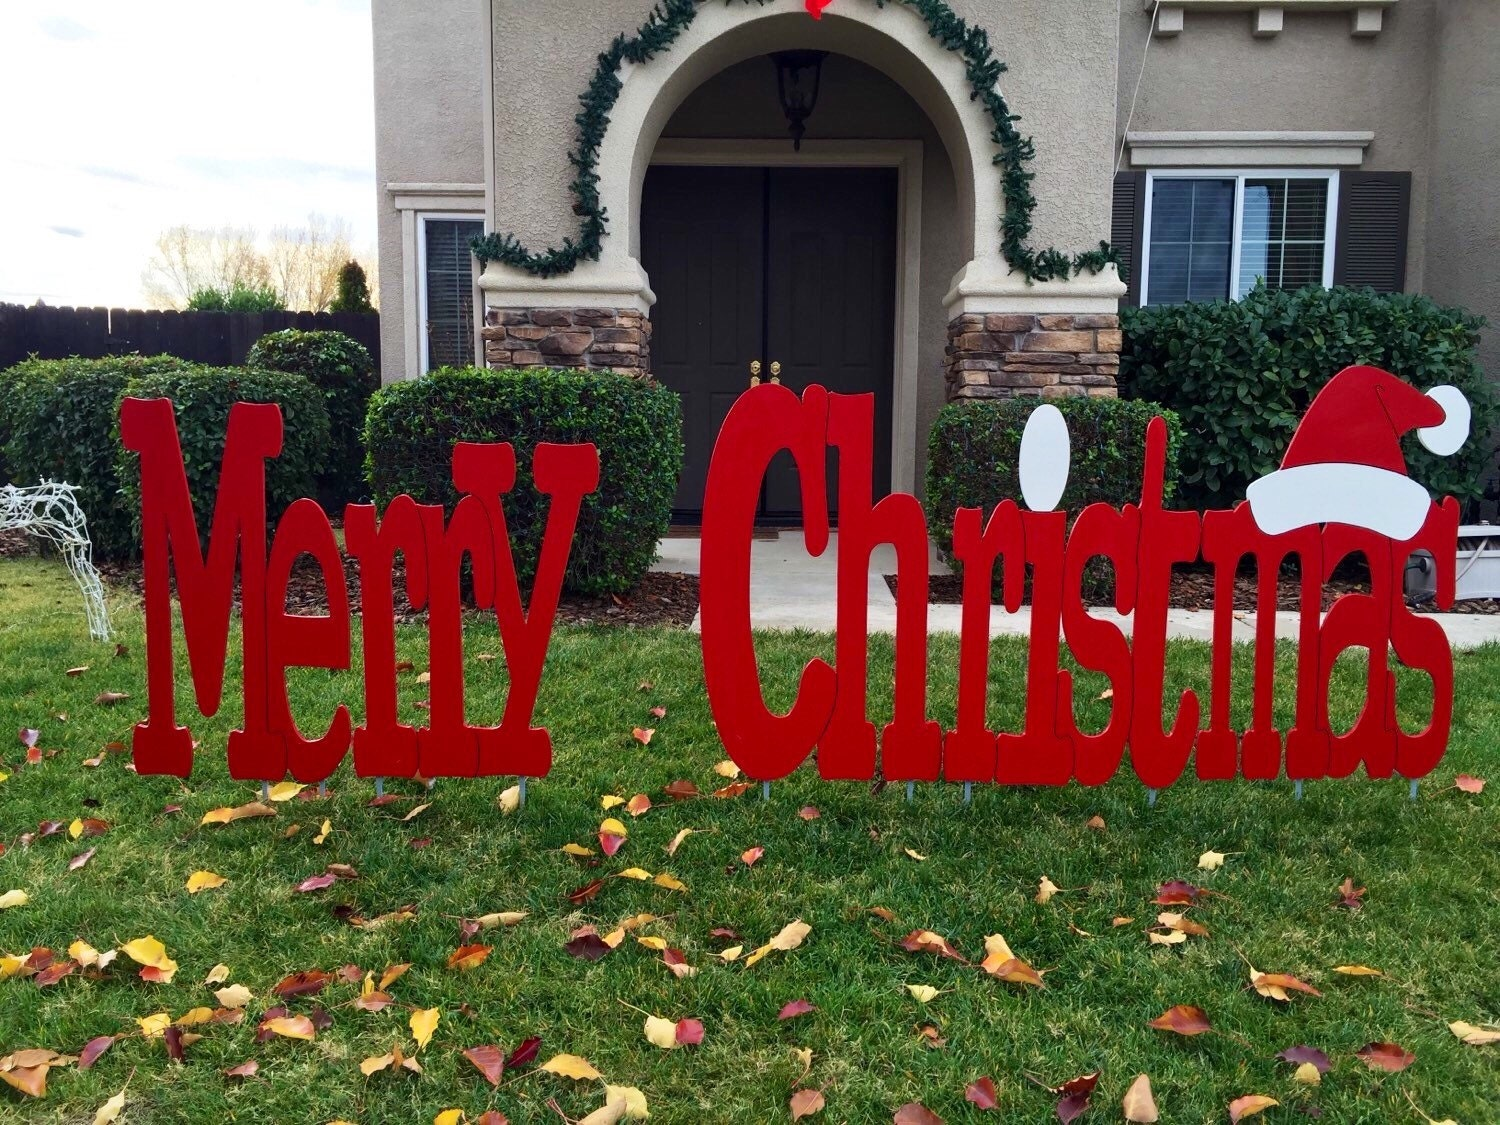 Merry christmas outdoor holiday yard art sign large for Holiday lawn decorations